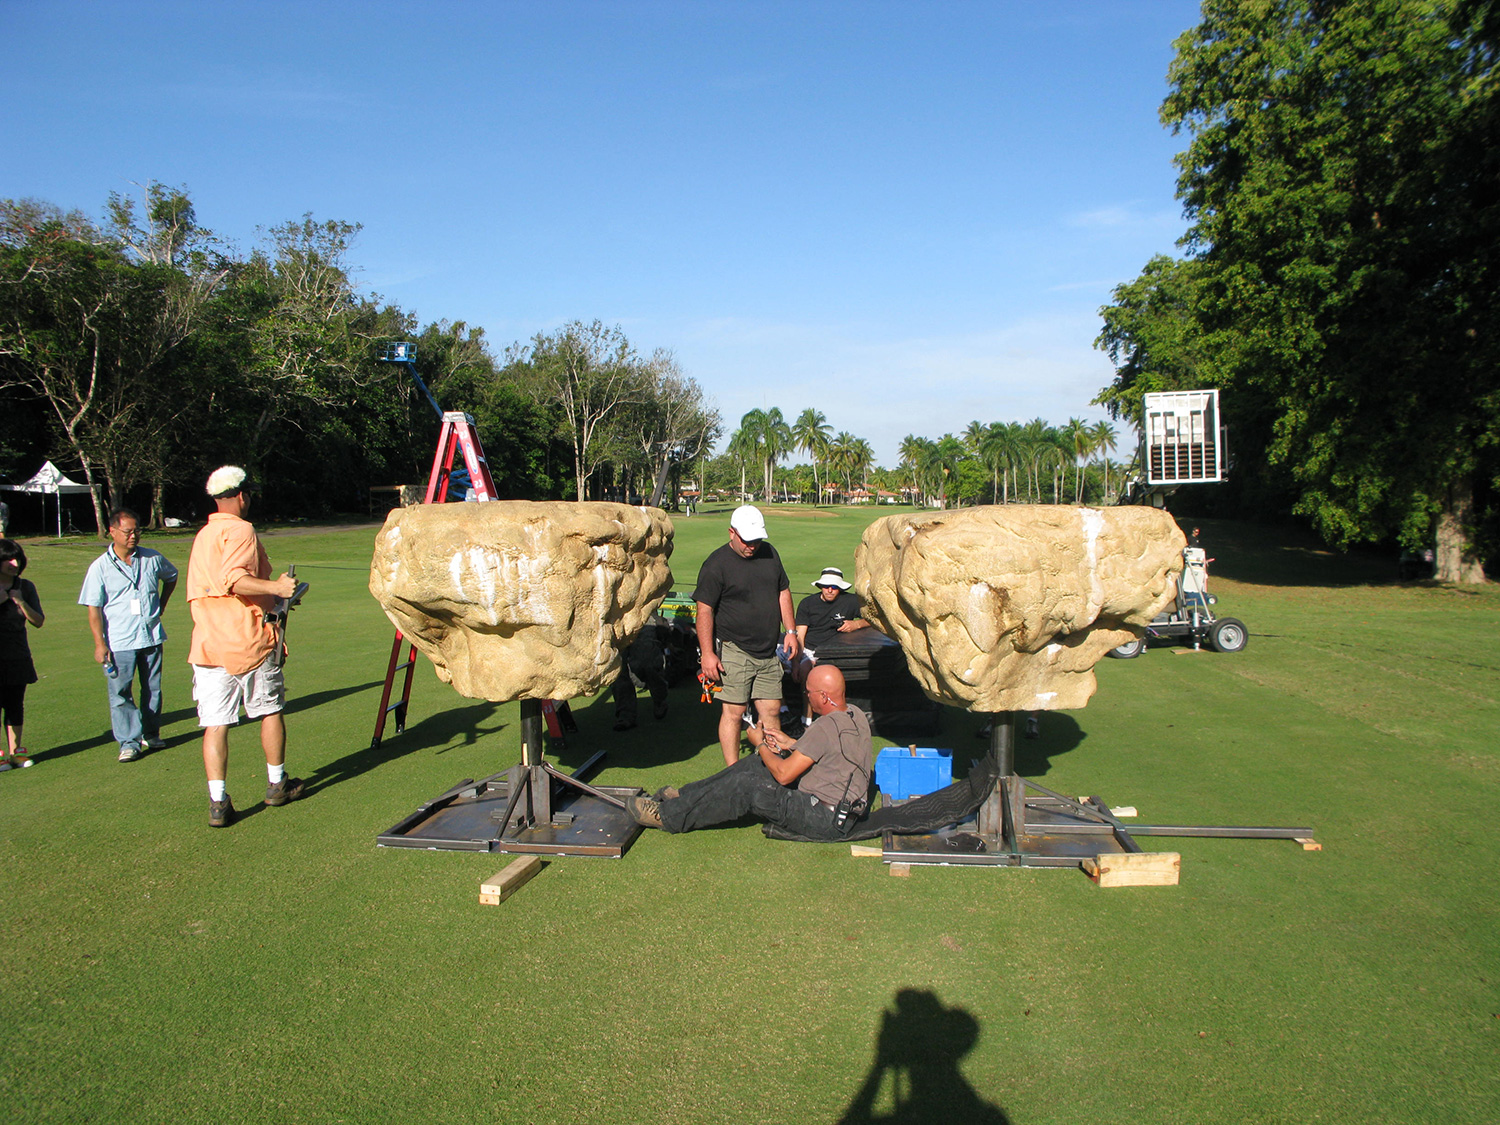 """""""Floating"""" stones, built on our efx crew's brilliant universal hydraulic gimbals, magically carried our hero's (David Henrie & Selena Gomez) across the yawning chasm. We actually used this golf course fairway as a natural green screen."""